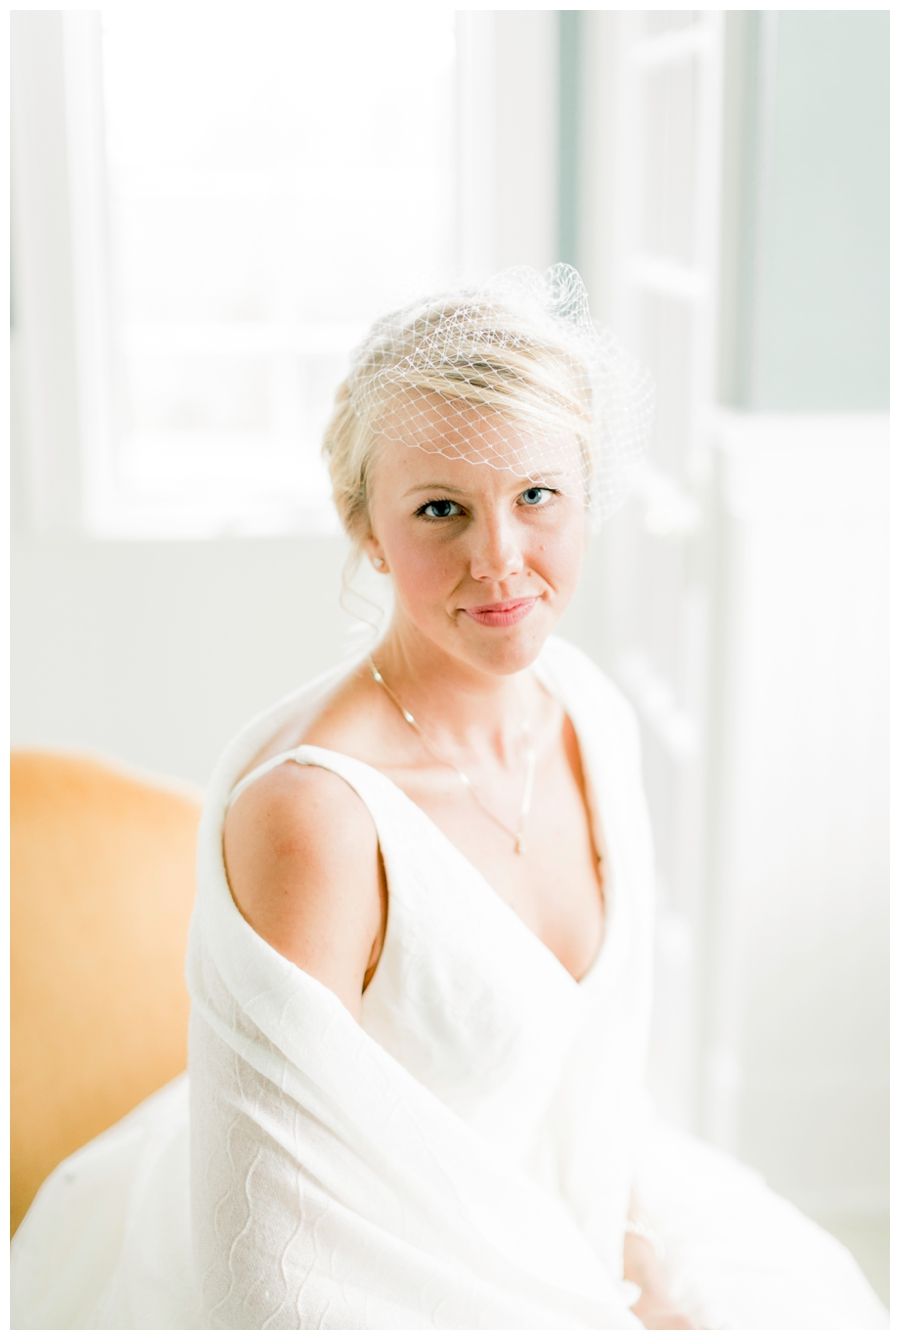 Light and Airy Photos of the bride in front of a window_0011.jpg